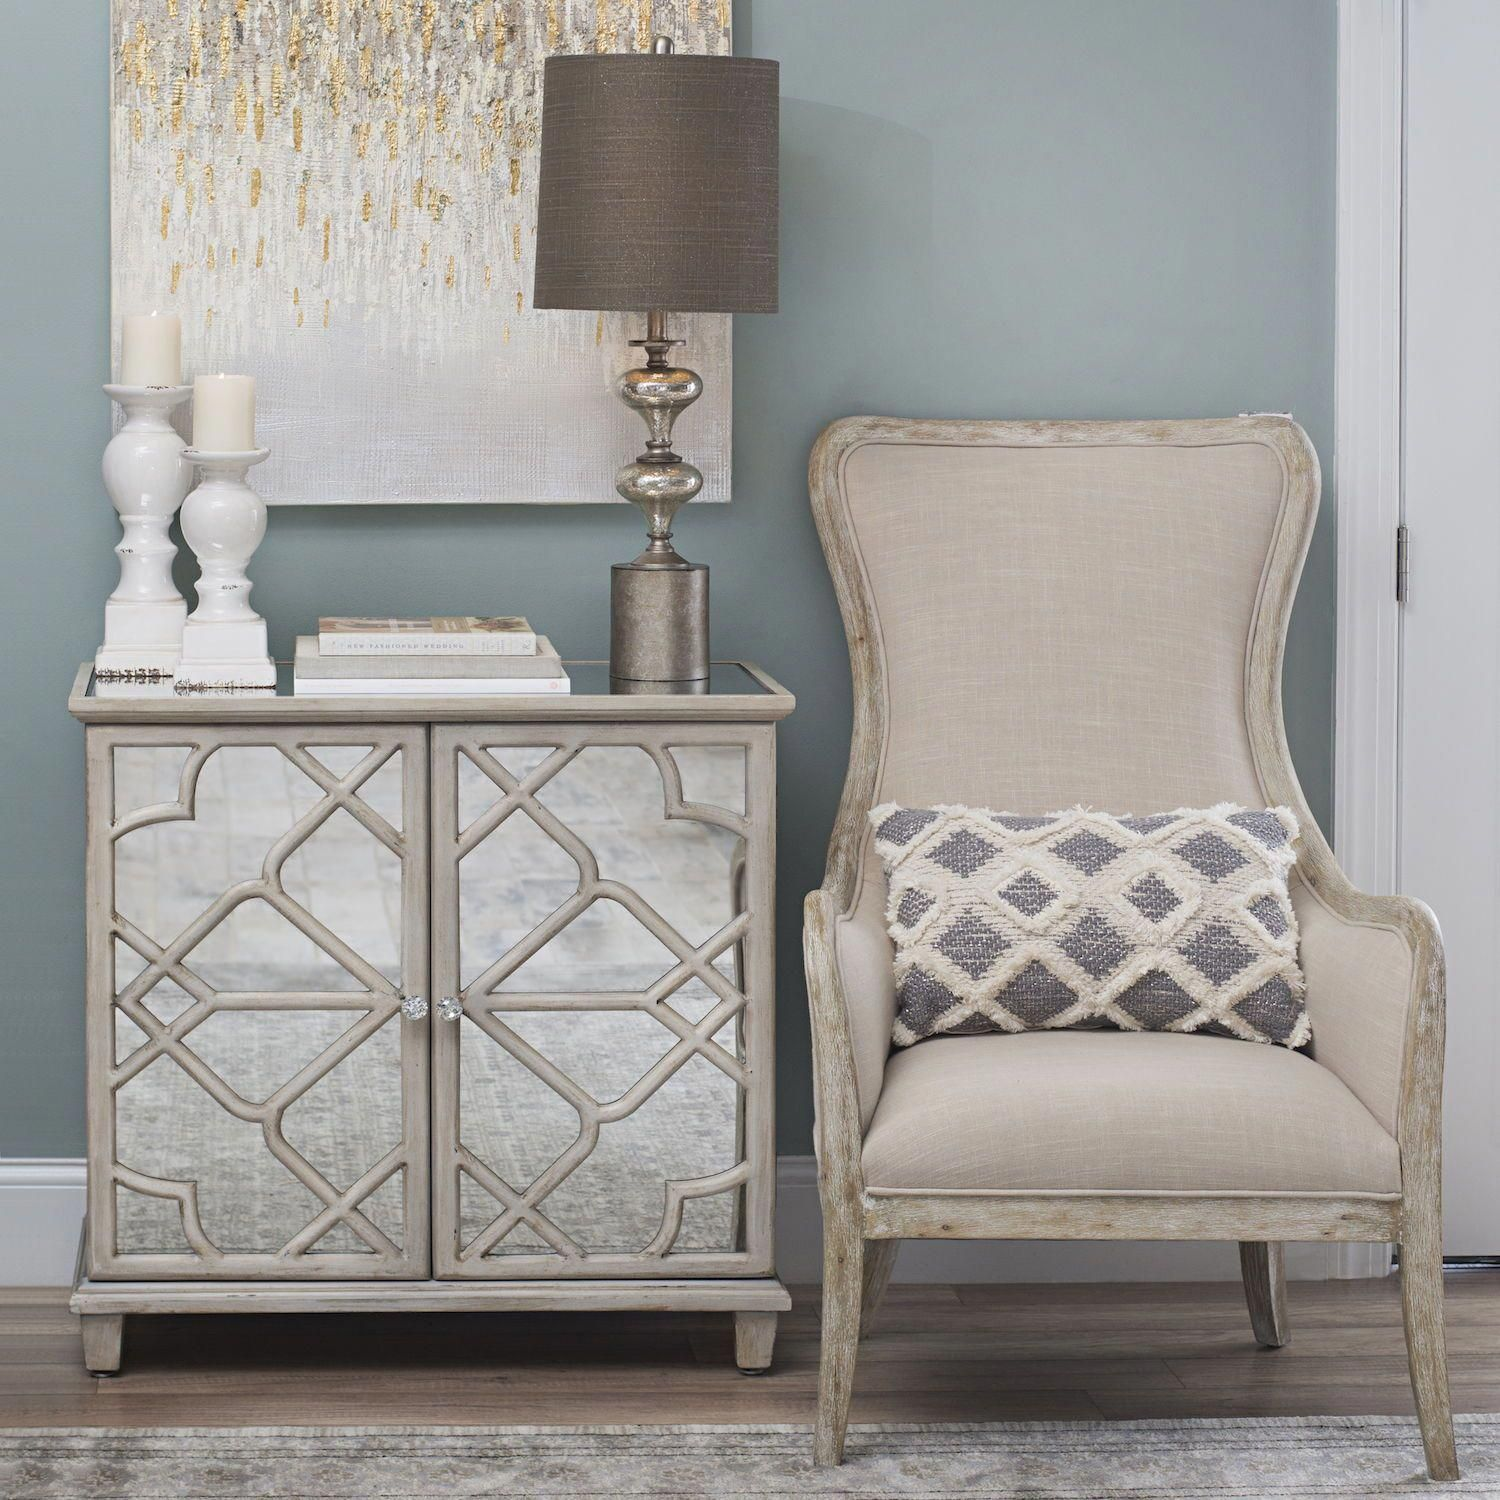 Elevate Your Entryway Swap The Bench For An Accent Chair Then Add & chair: Entryway Accent Chair